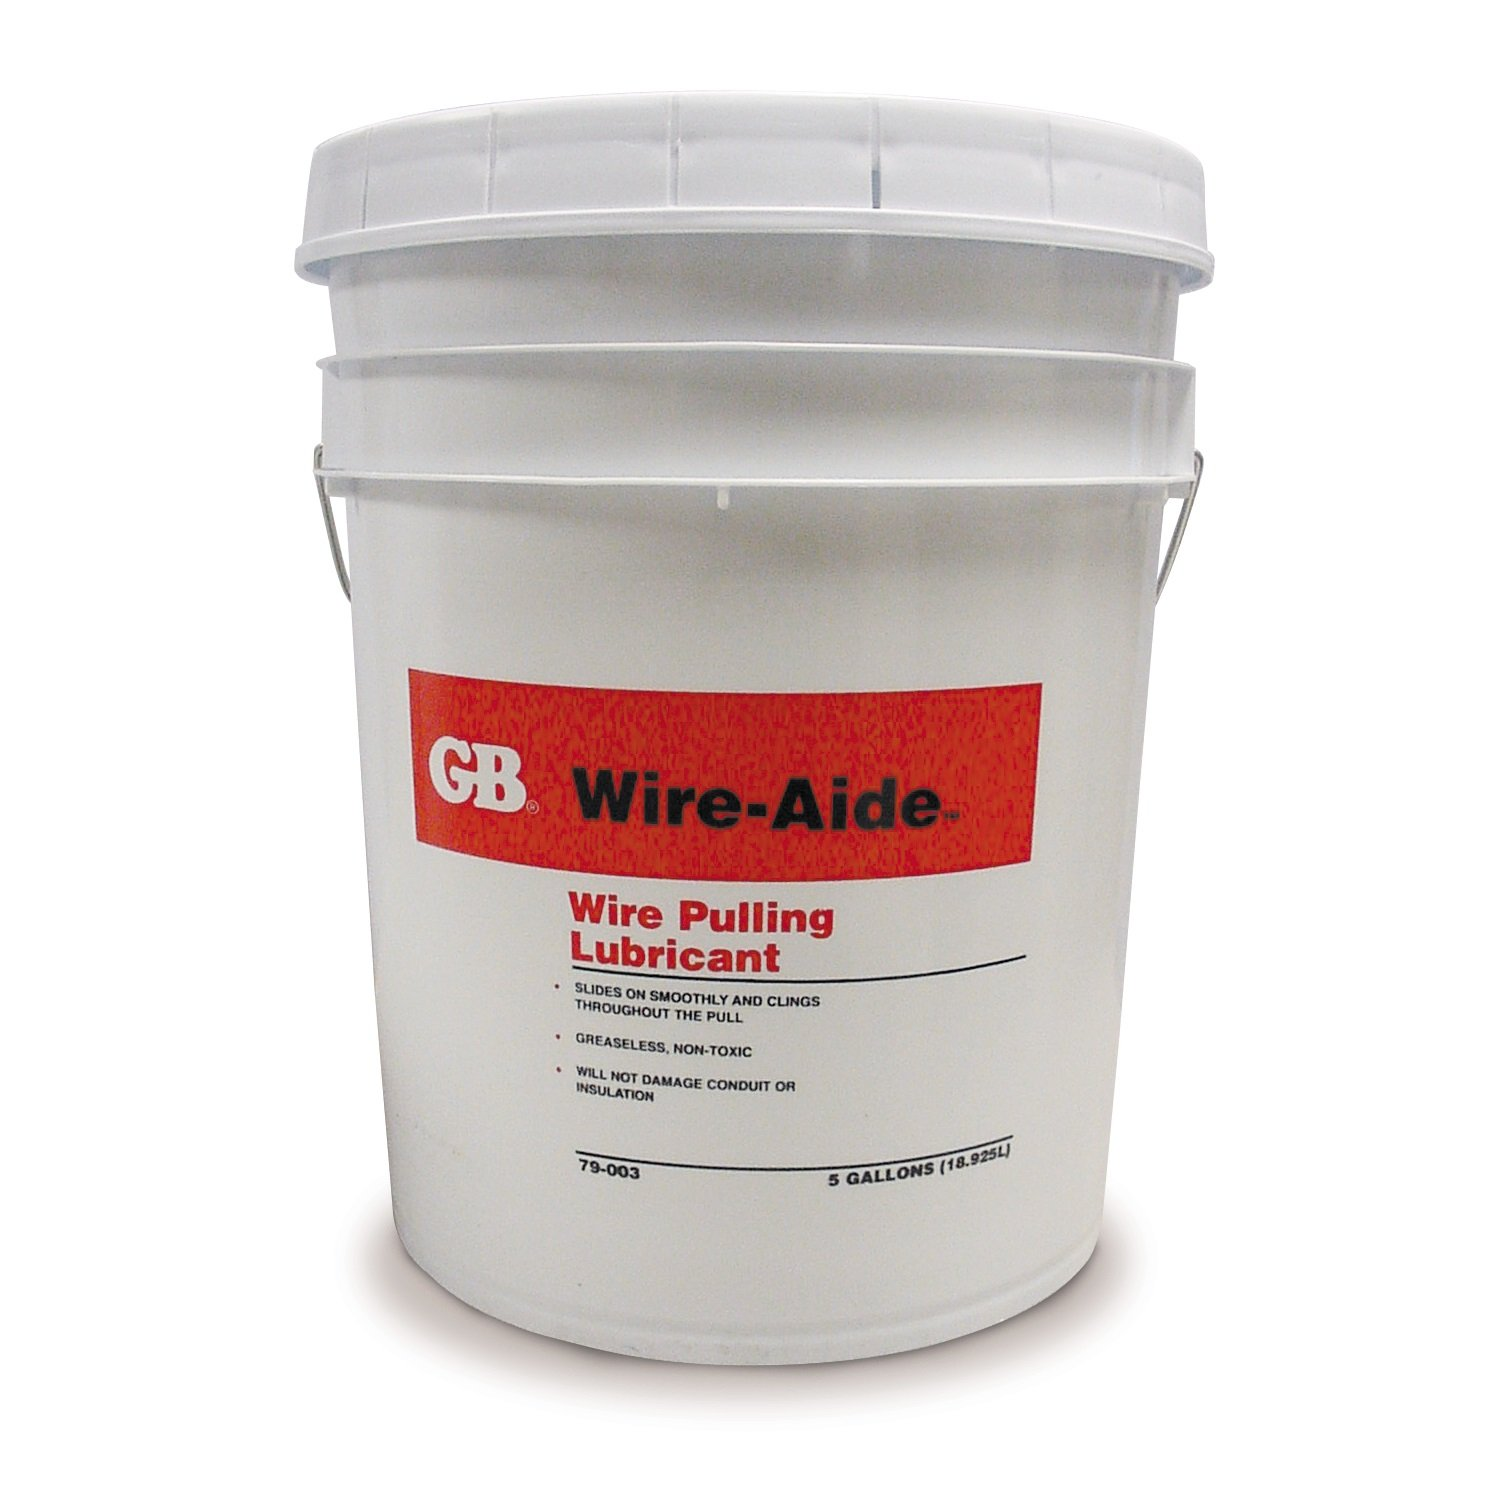 Amazon.com: Gardner Bender 79-006N Wire-Aide Wire Pulling Lubricant ...